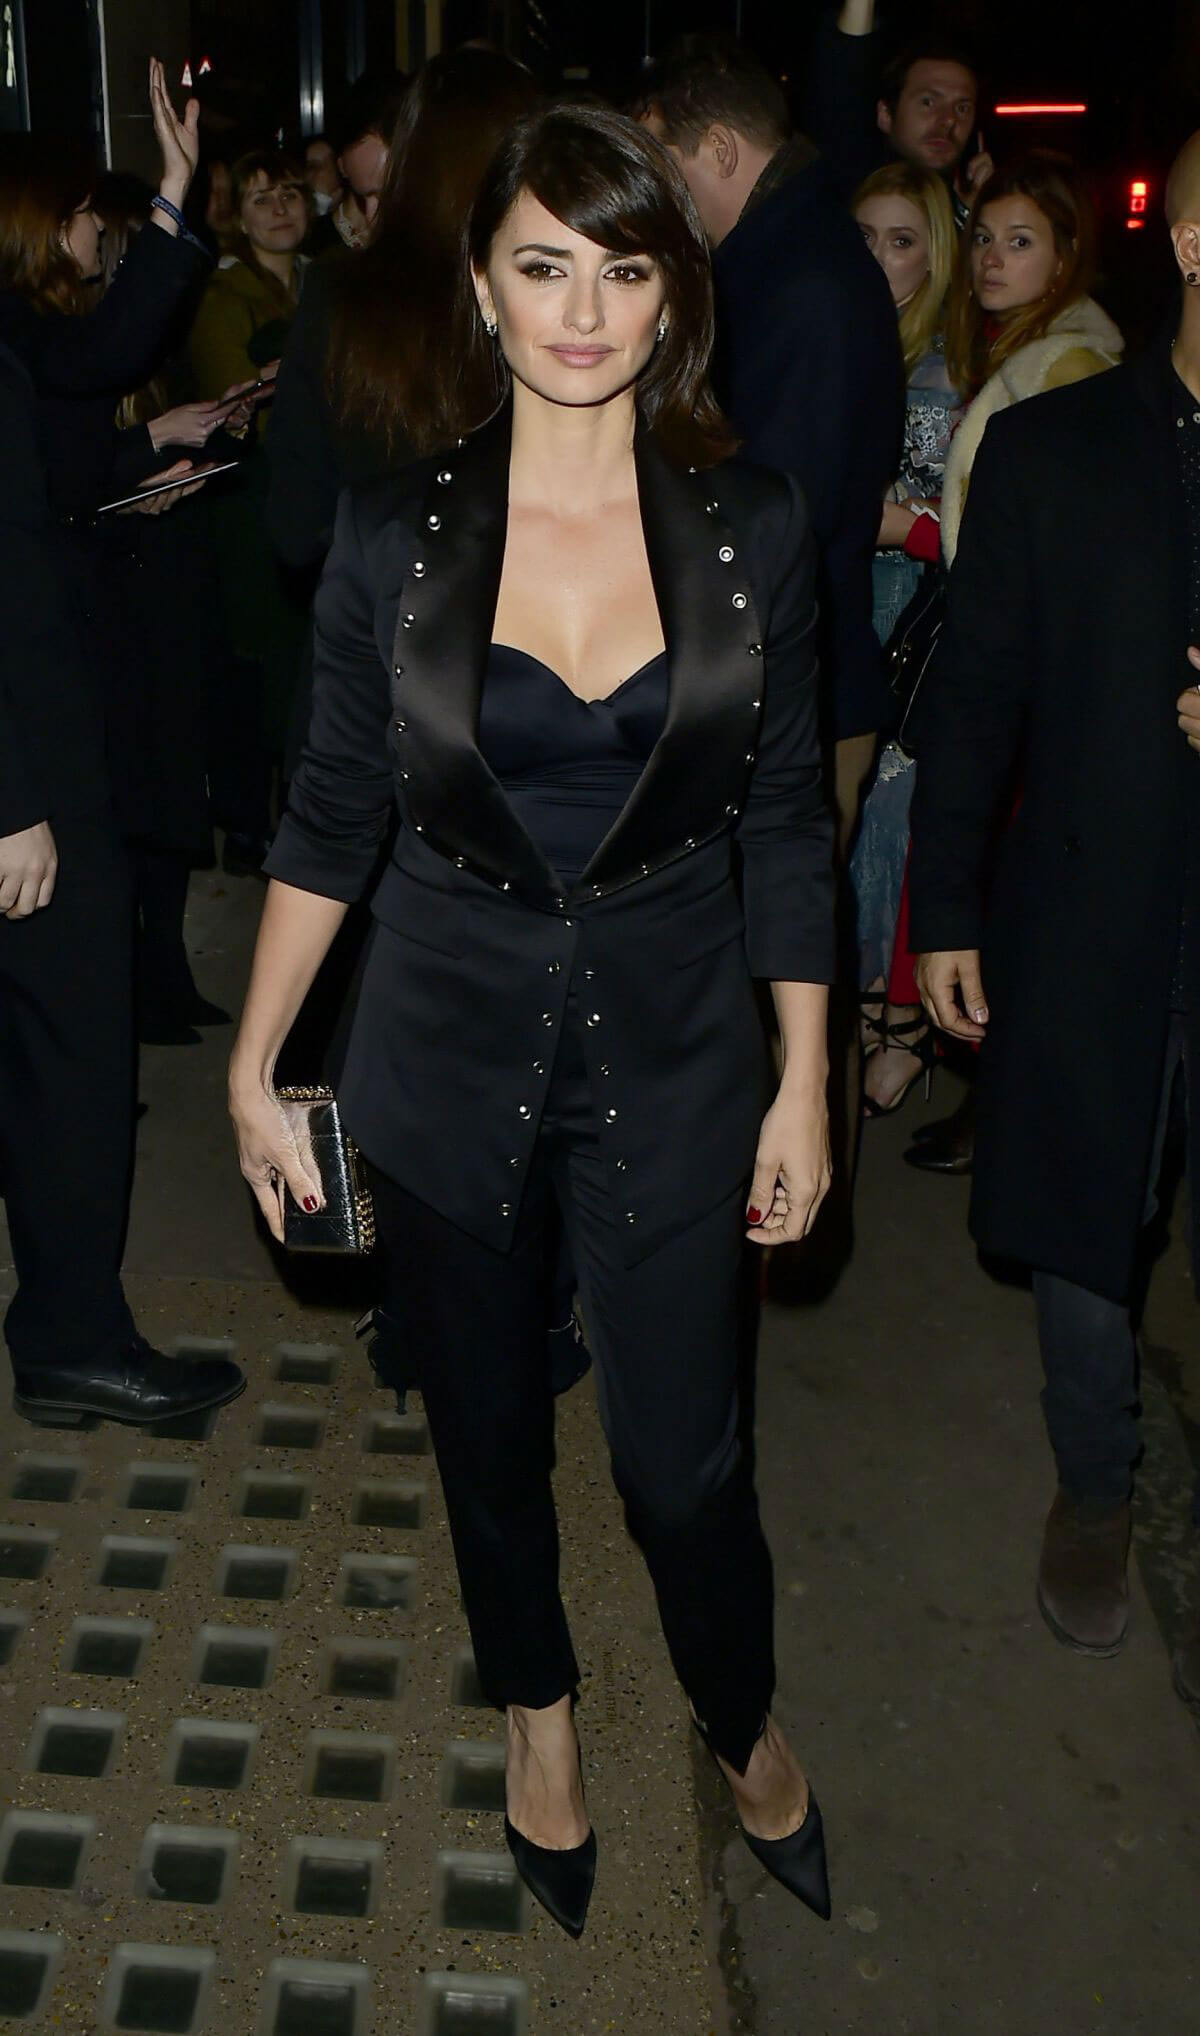 Penélope Cruz Stills at Burberry Fashion Show After Party in London